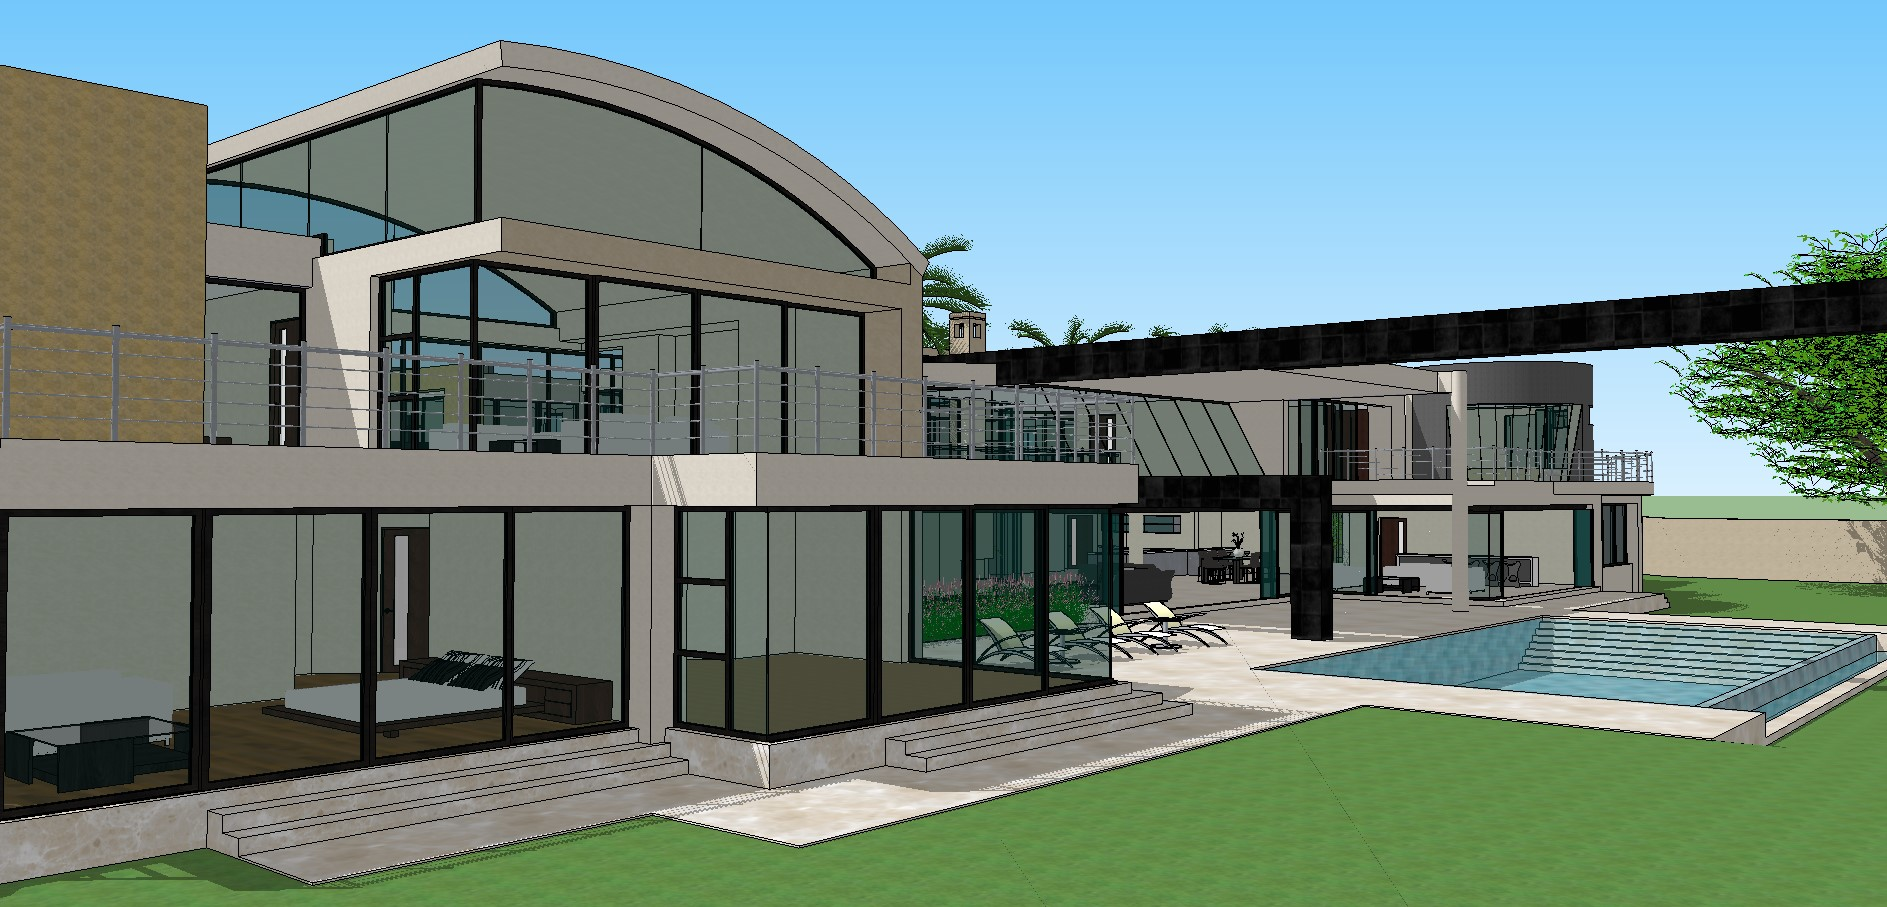 Sketchup file of house design in 3d Cadbull